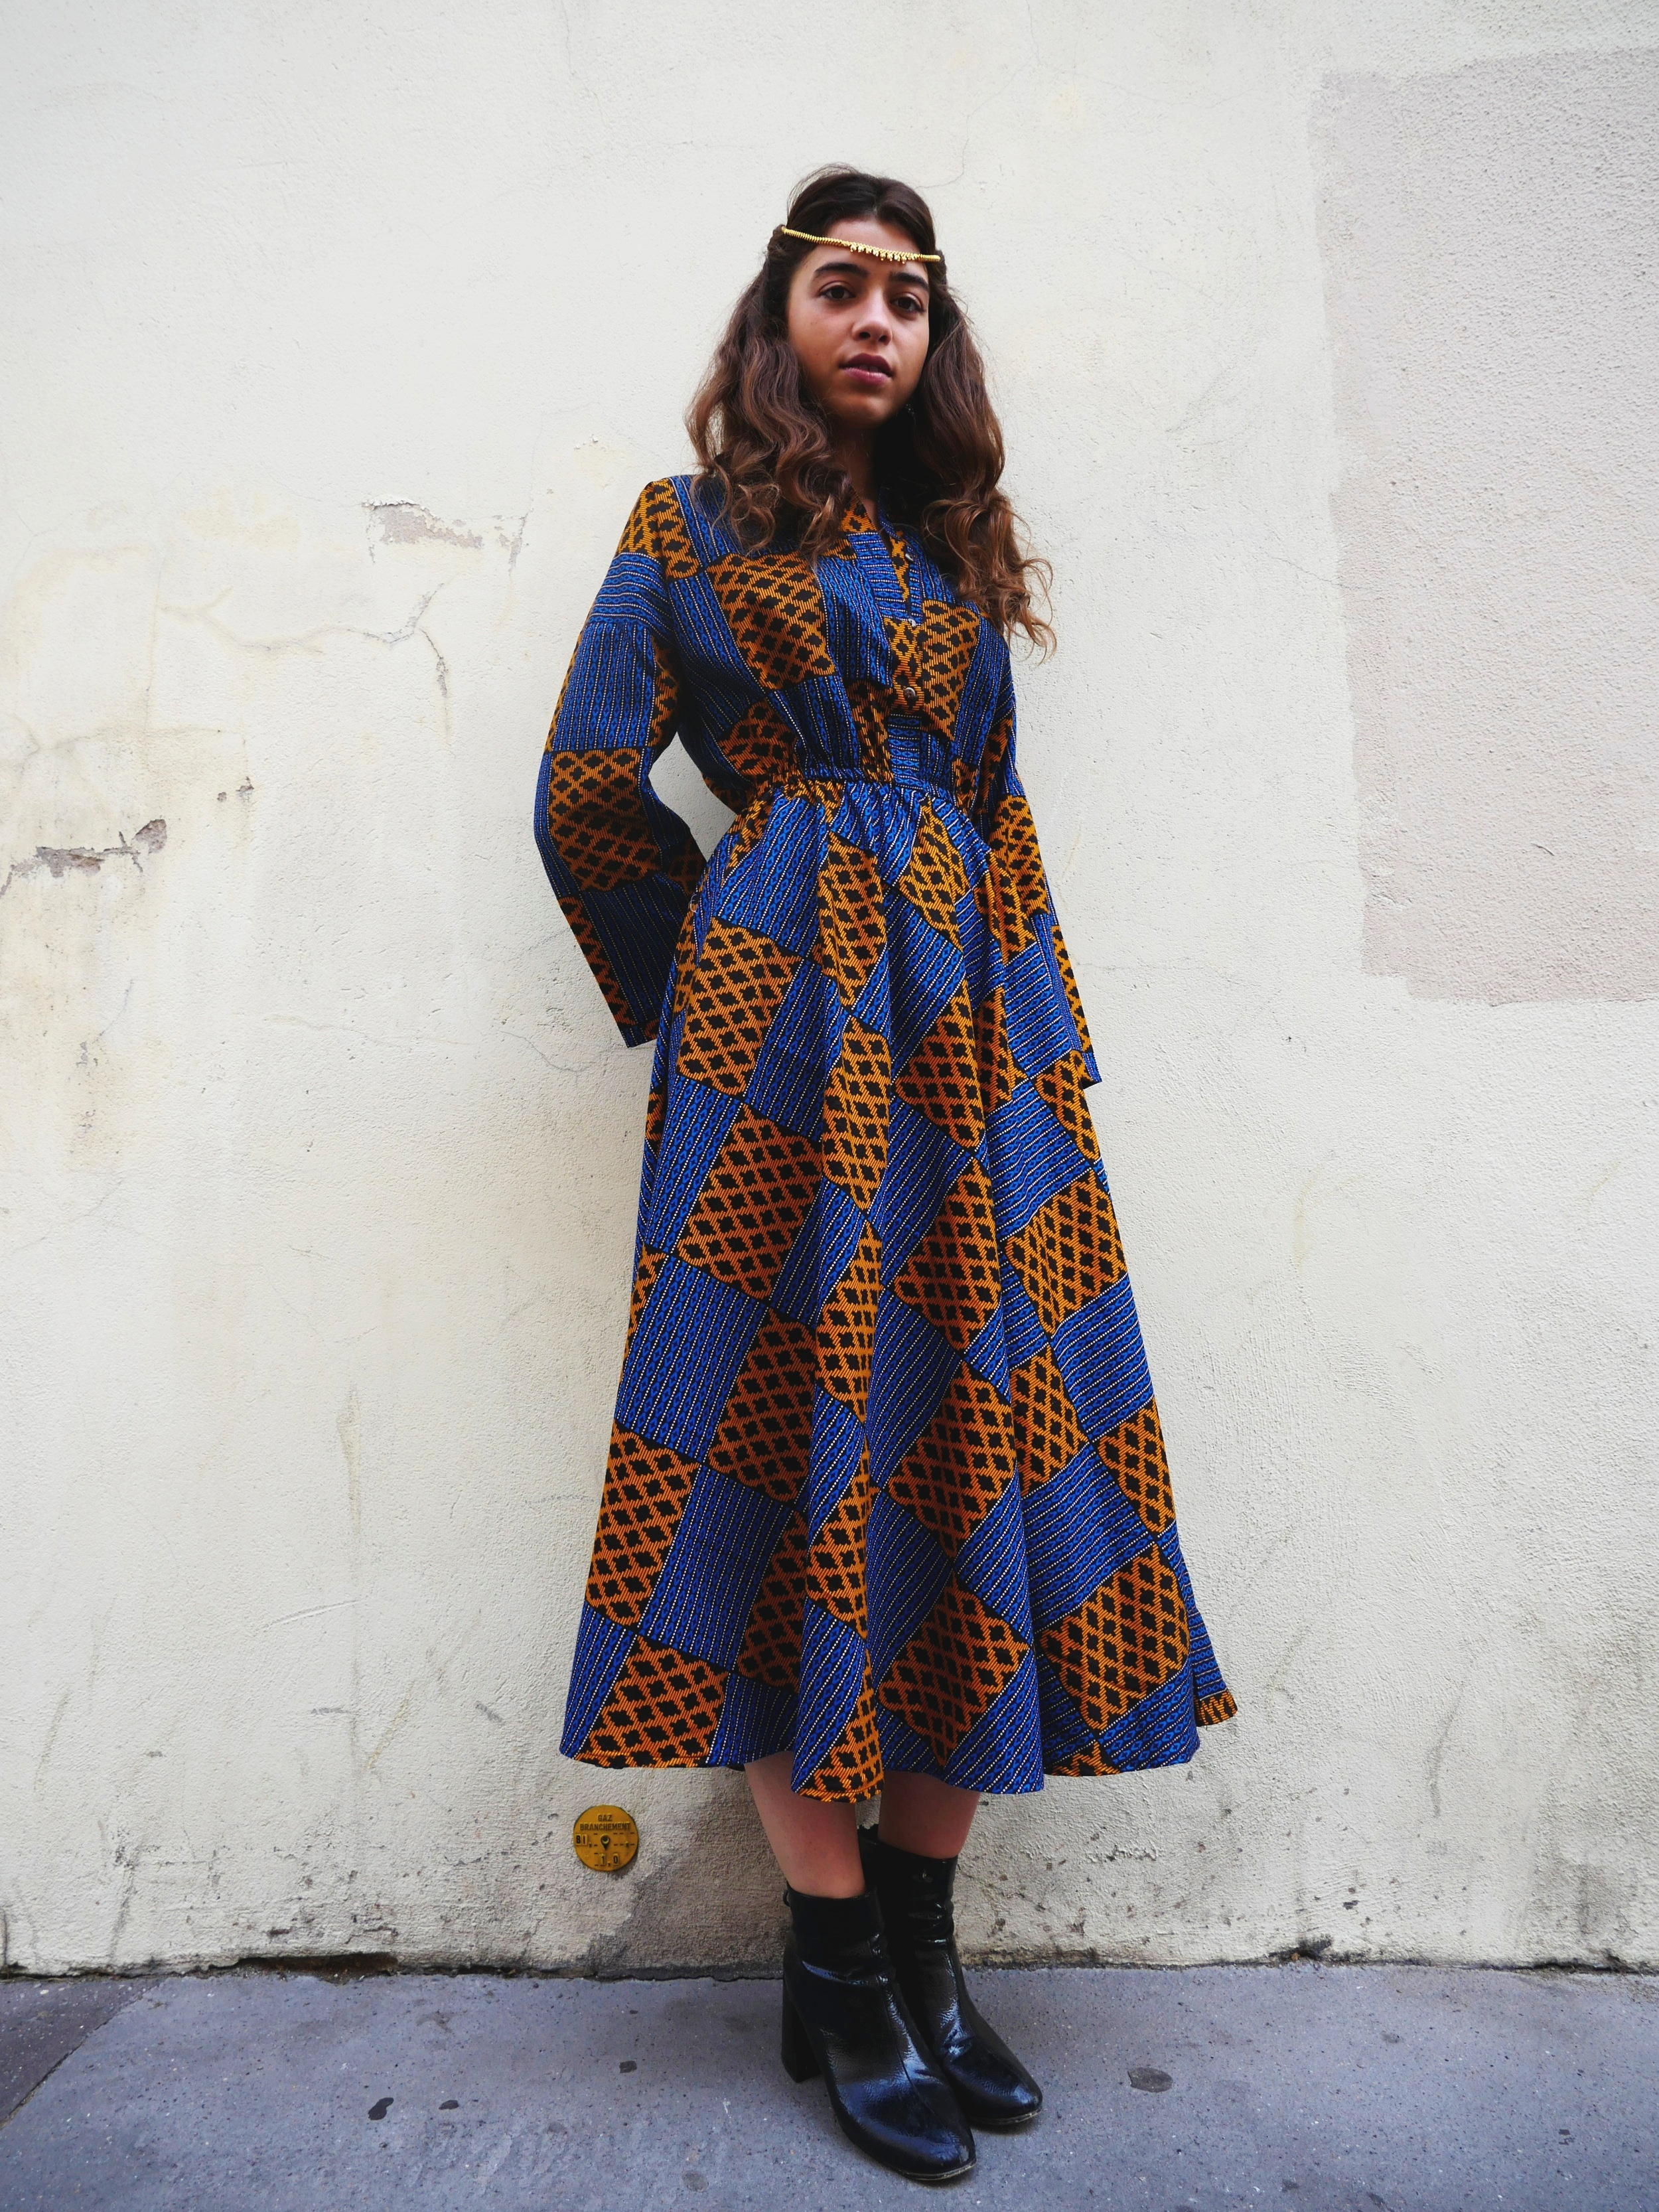 Ana Orange Blue Wax Dress - Waxed cotton bought in Senegal, made in Bangladesh with love